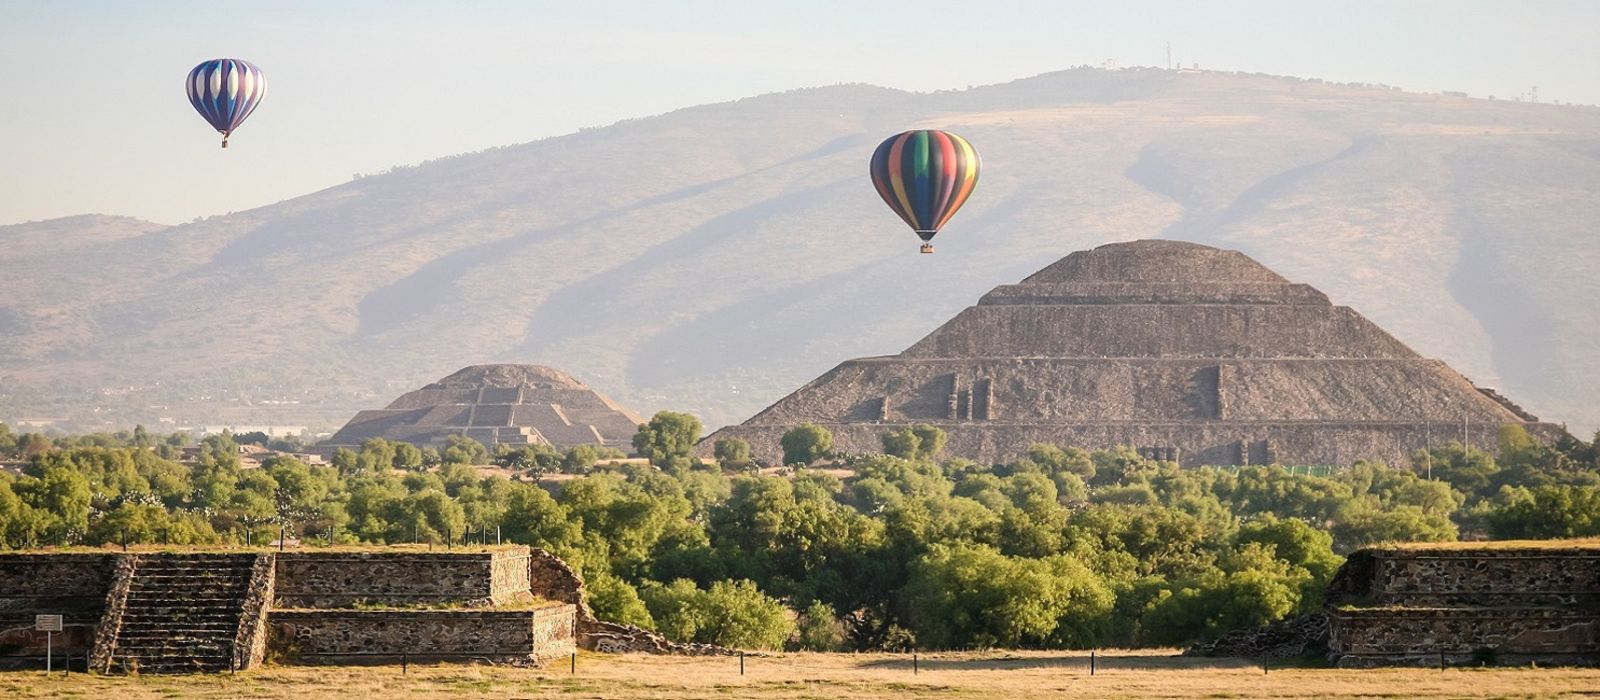 Hot air ballons over the pyramids of Teotihuacan in Mexico